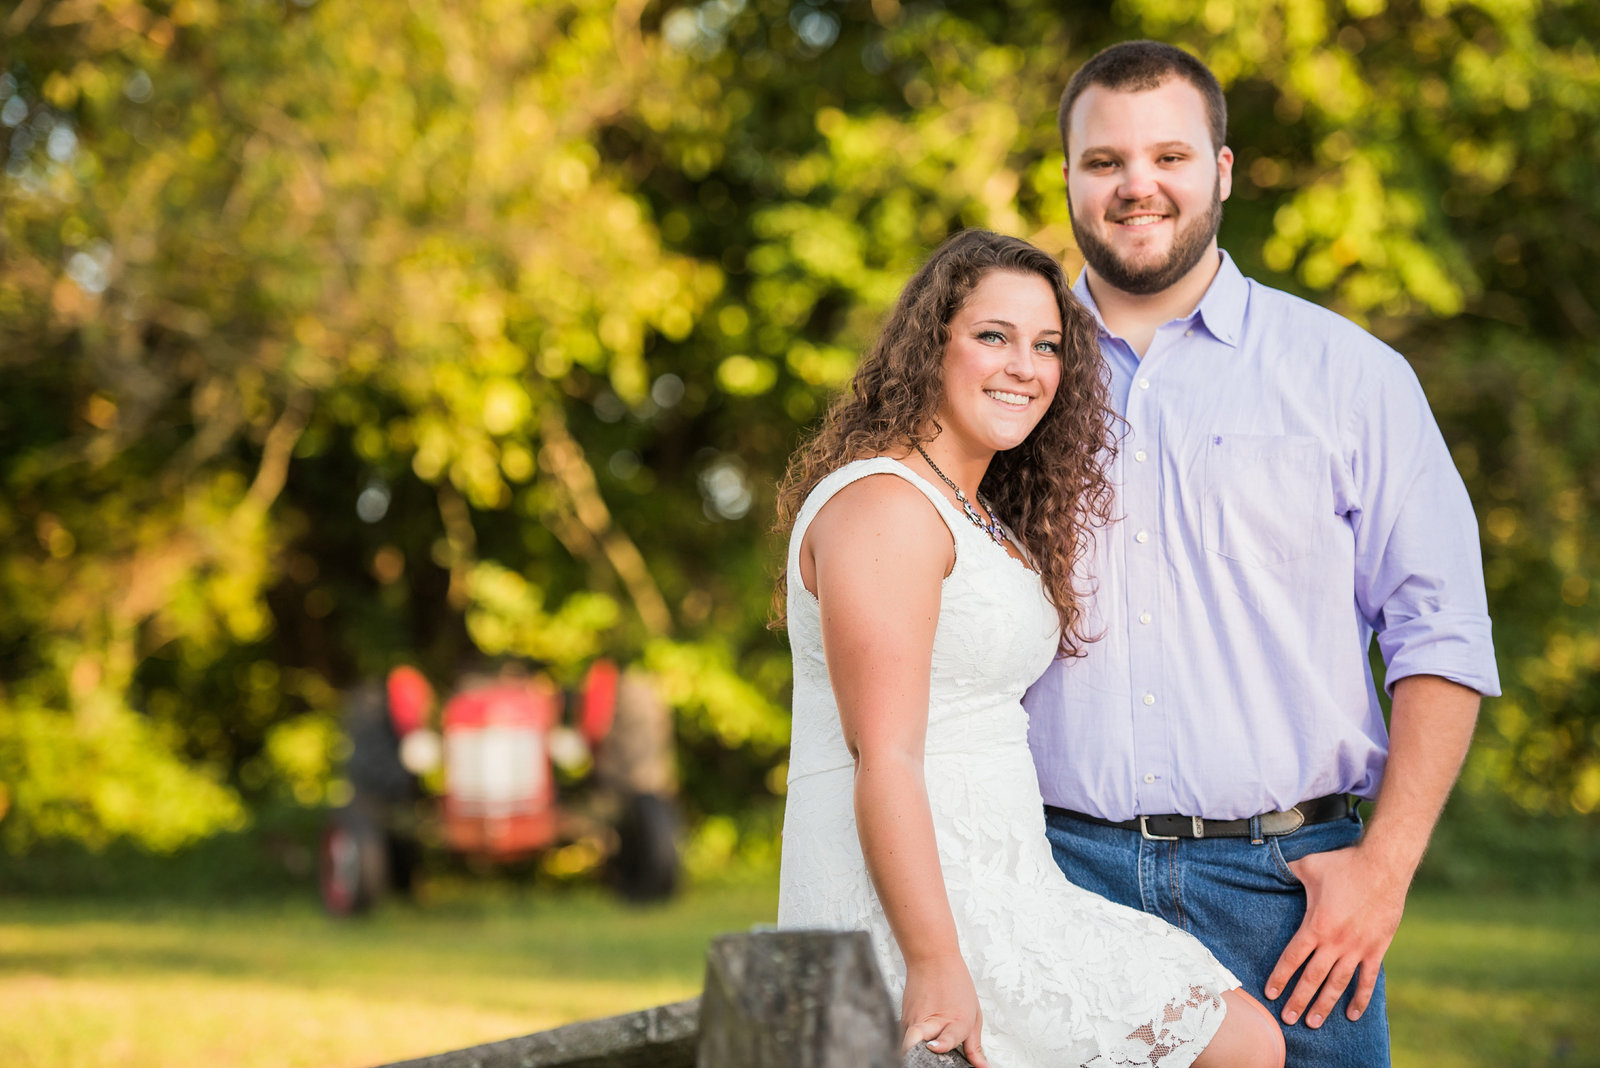 NJ_Rustic_Engagement_Photography056